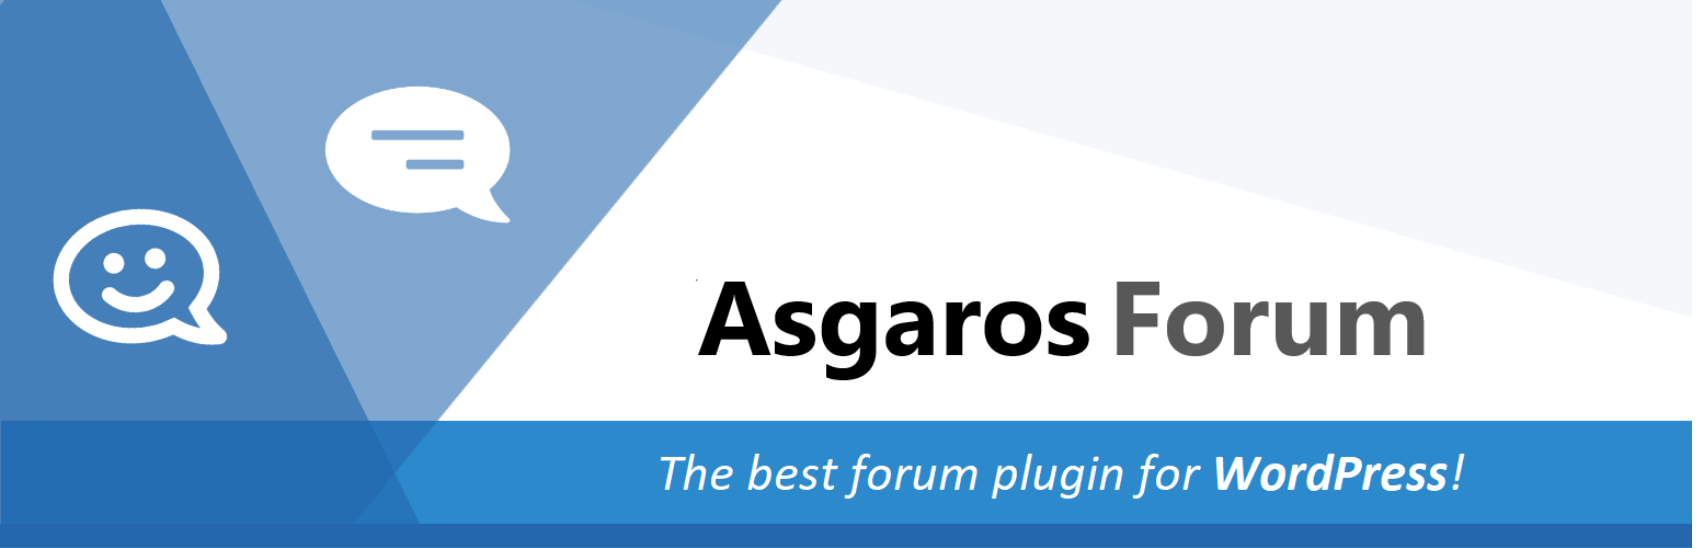 Le plugin Asgaros Forum.